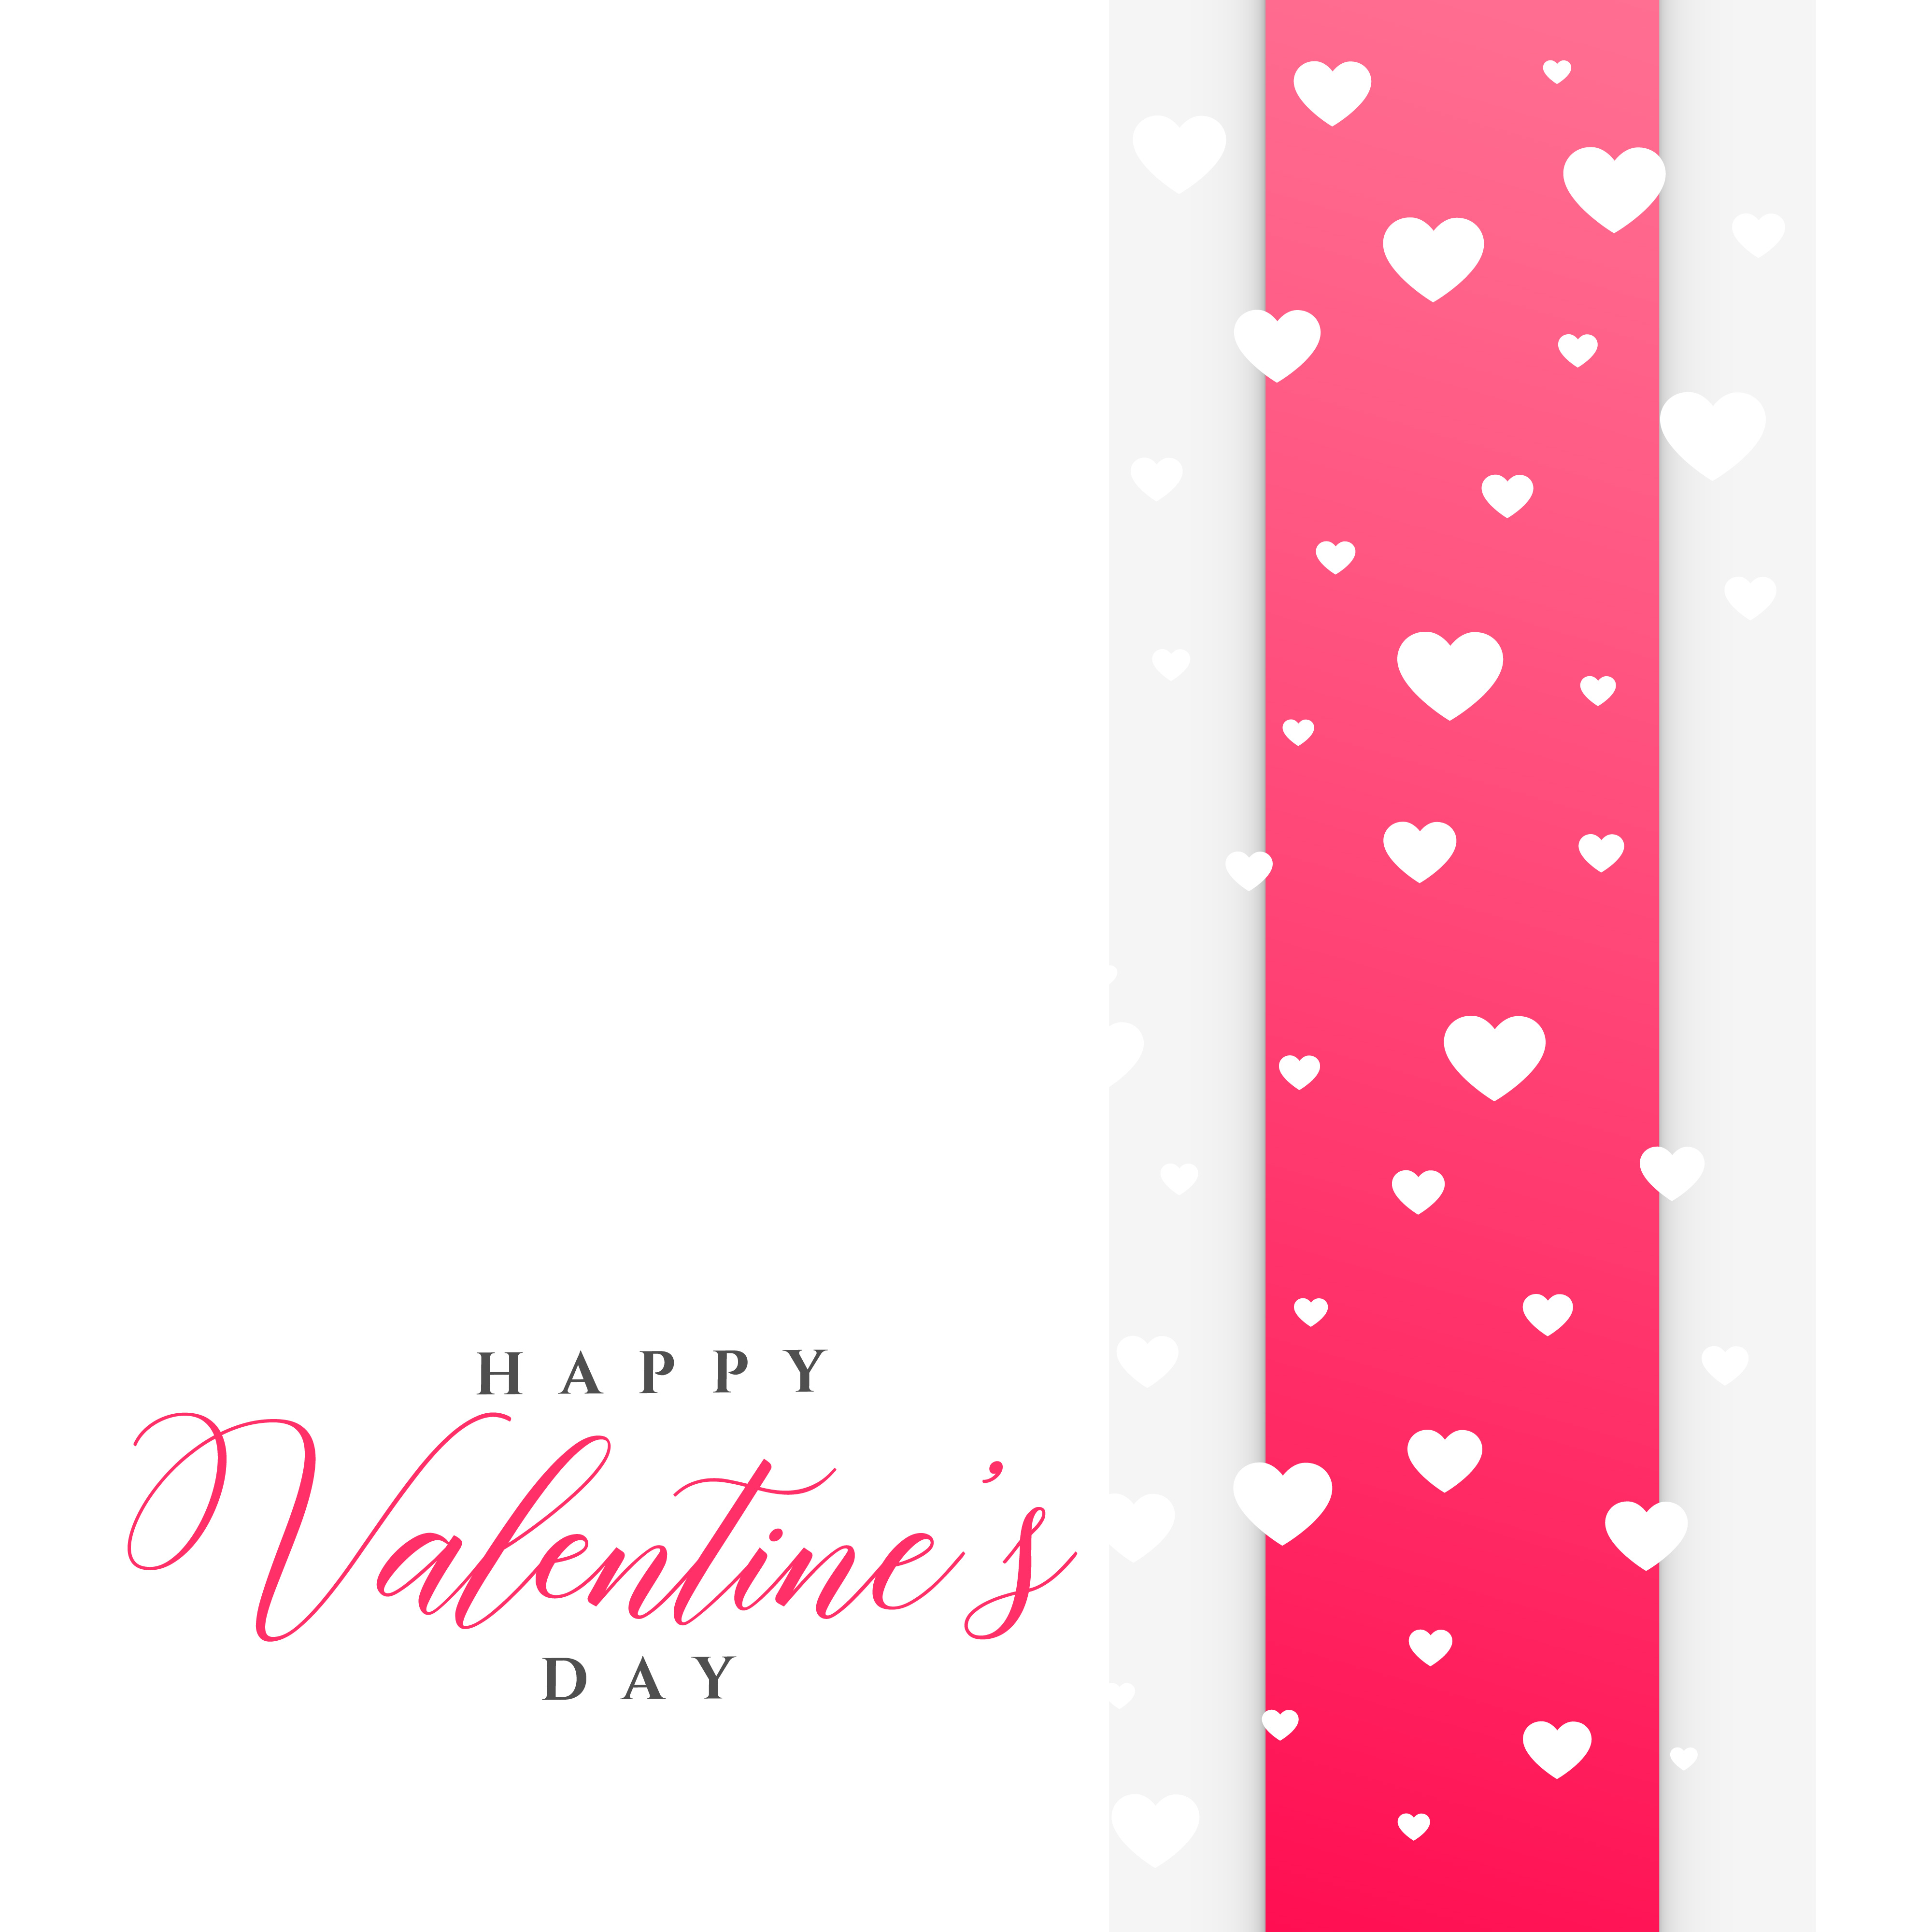 clean valentine u0026 39 s day greeting template with hearts